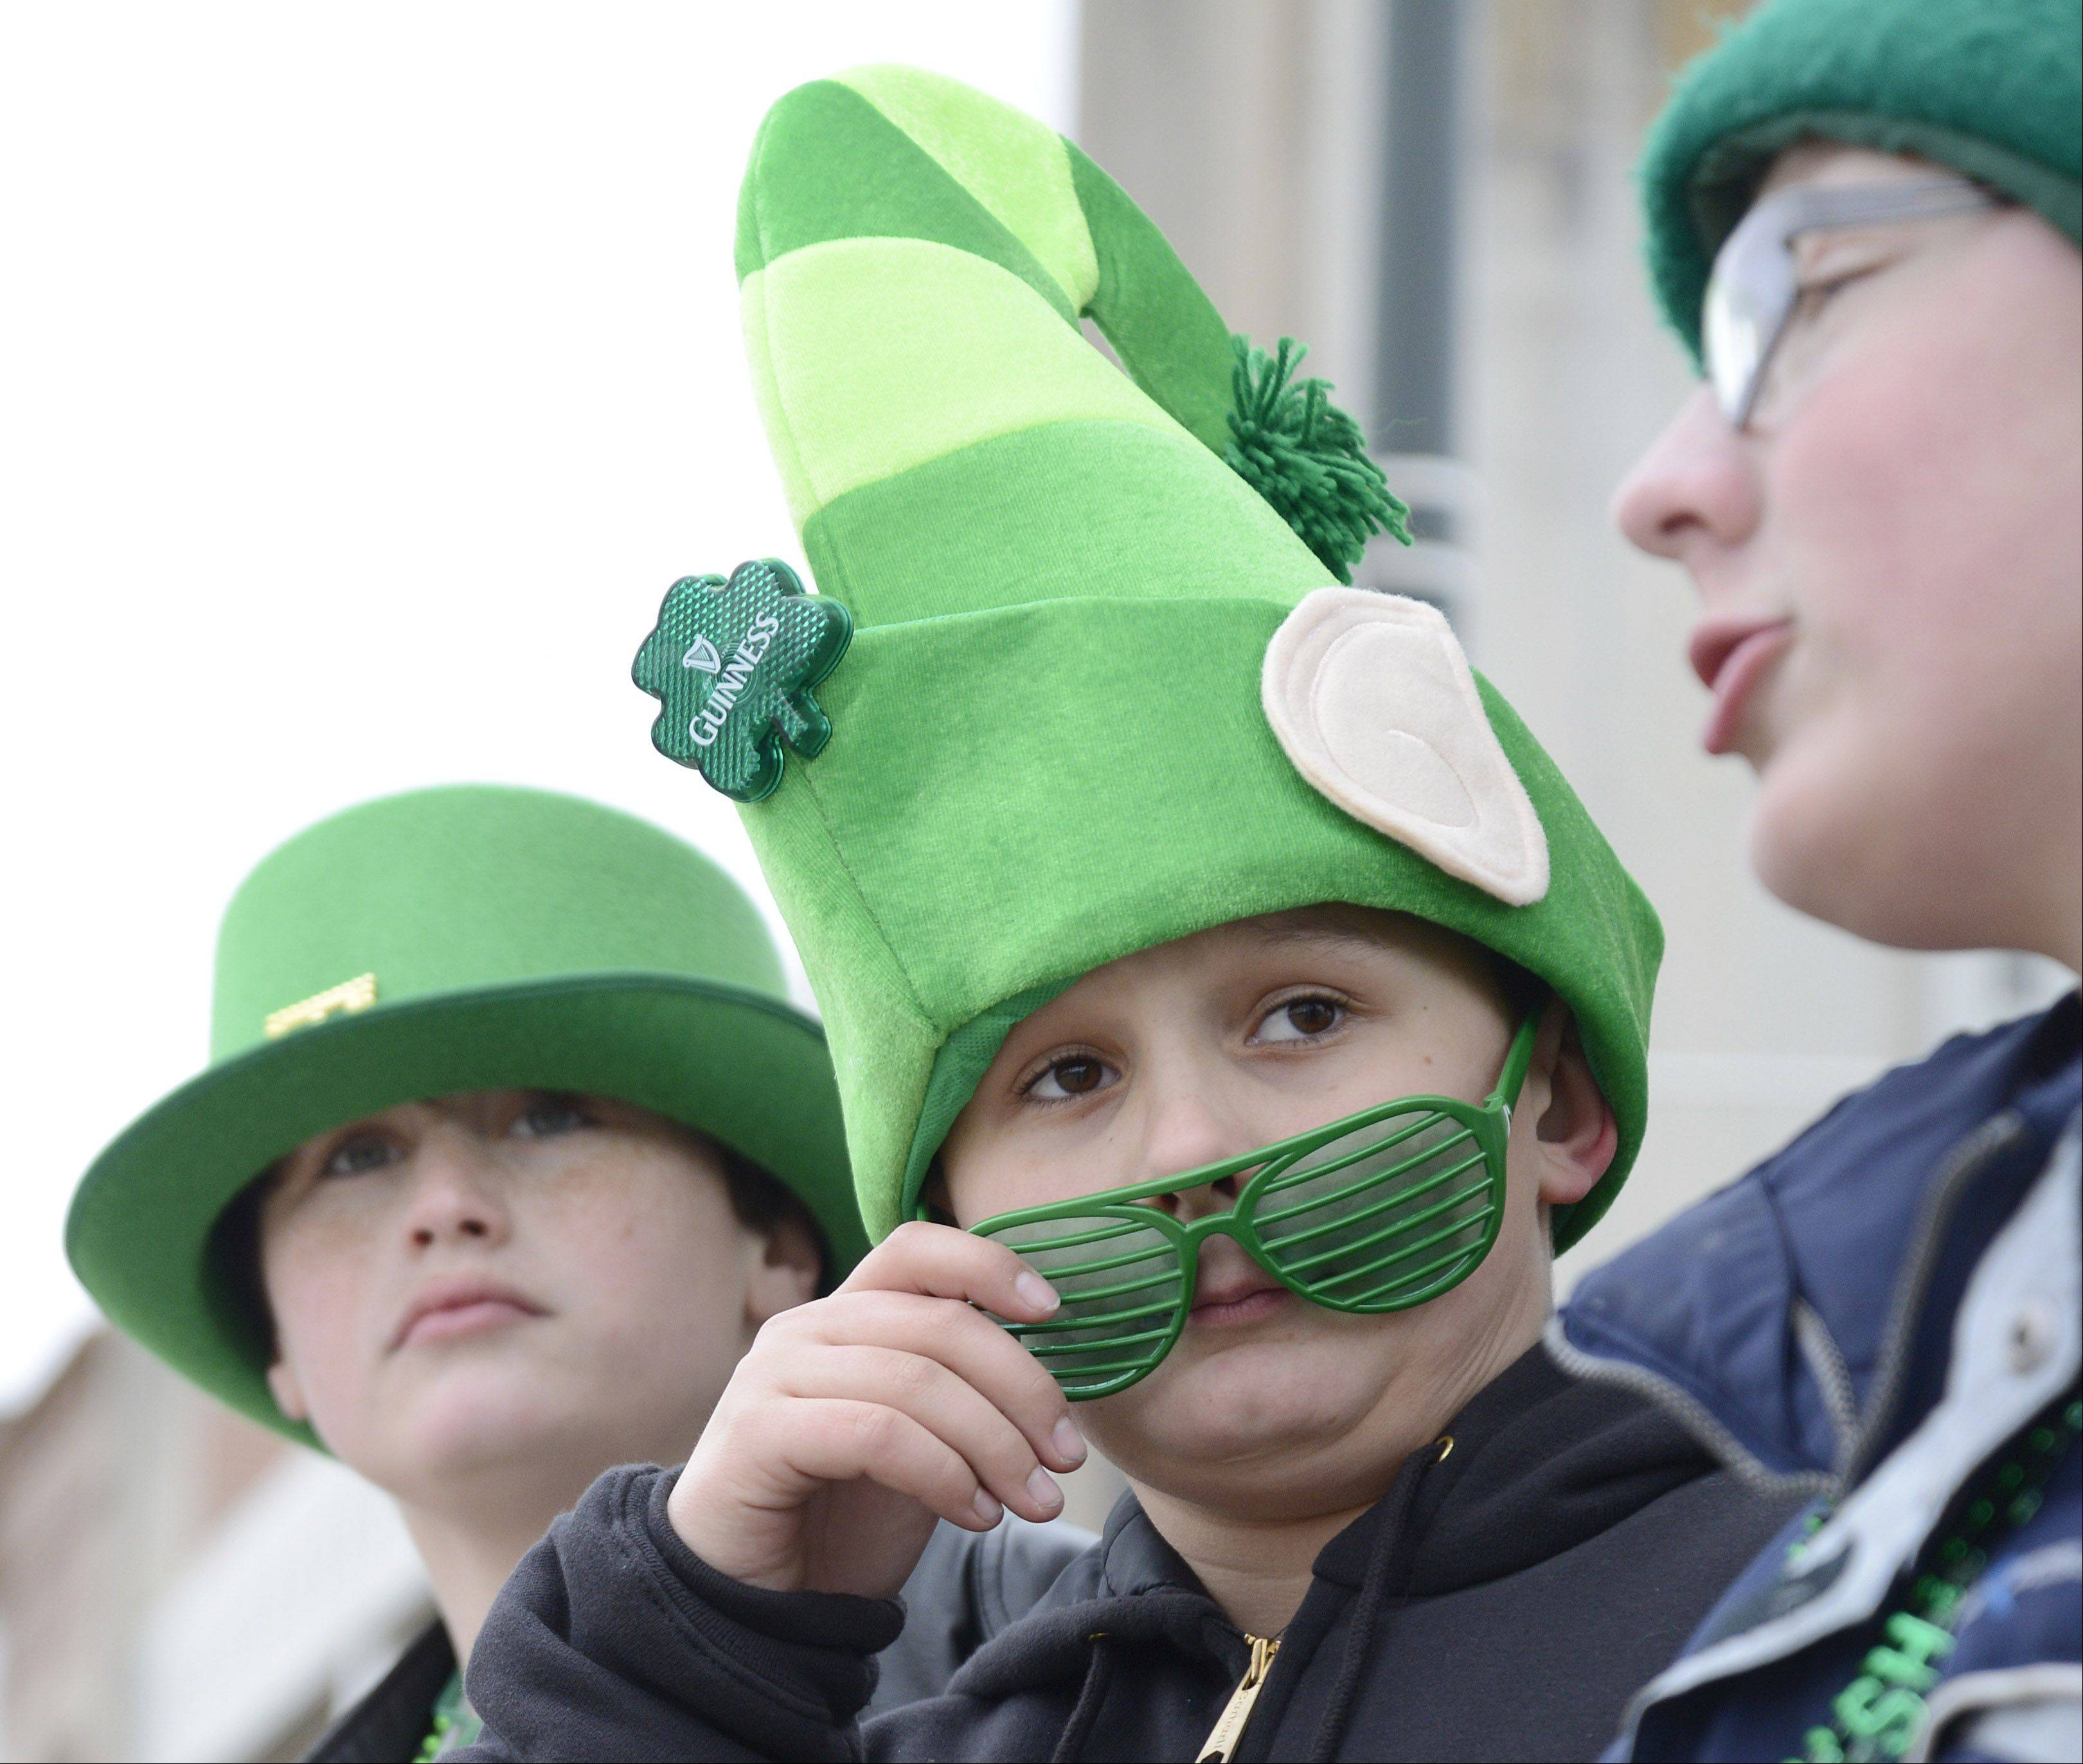 Joe Hanisch, 12, of St. Charles takes a peek at what�s coming next in the St. Patrick�s Day parade in St. Charles on Saturday. His birthday falls on St. Patrick�s Day.